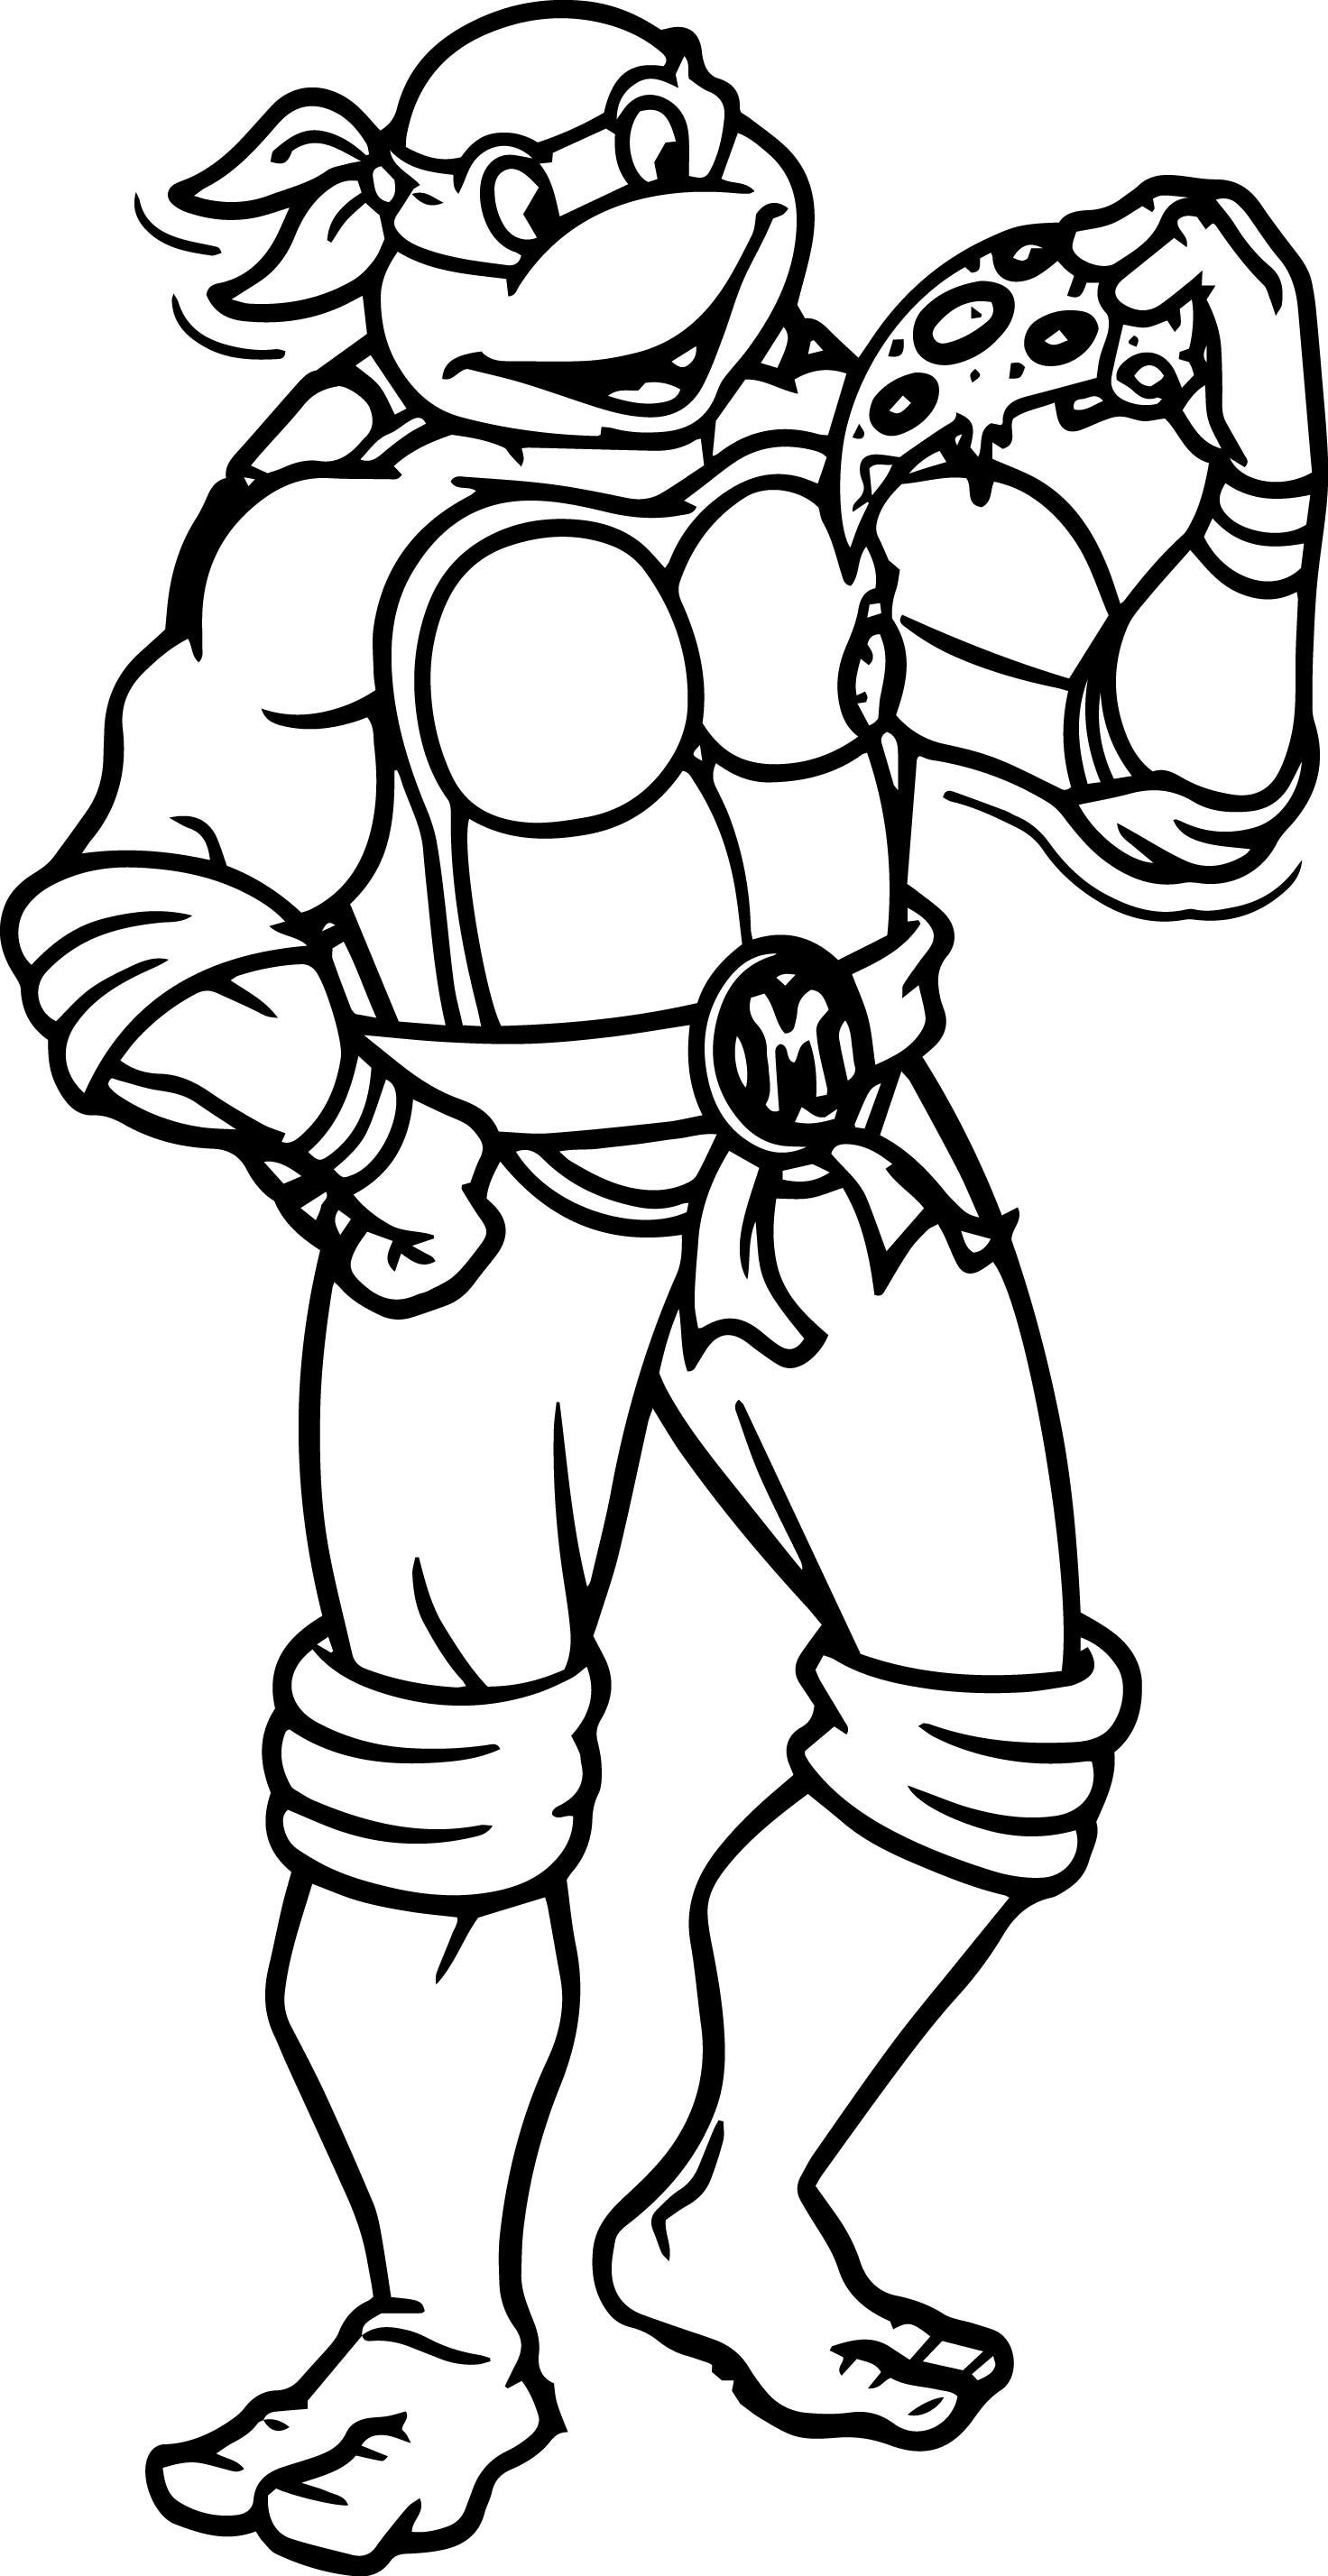 1472x2856 Leonardo Teenage Mutant Ninja Turtles Coloring Pages